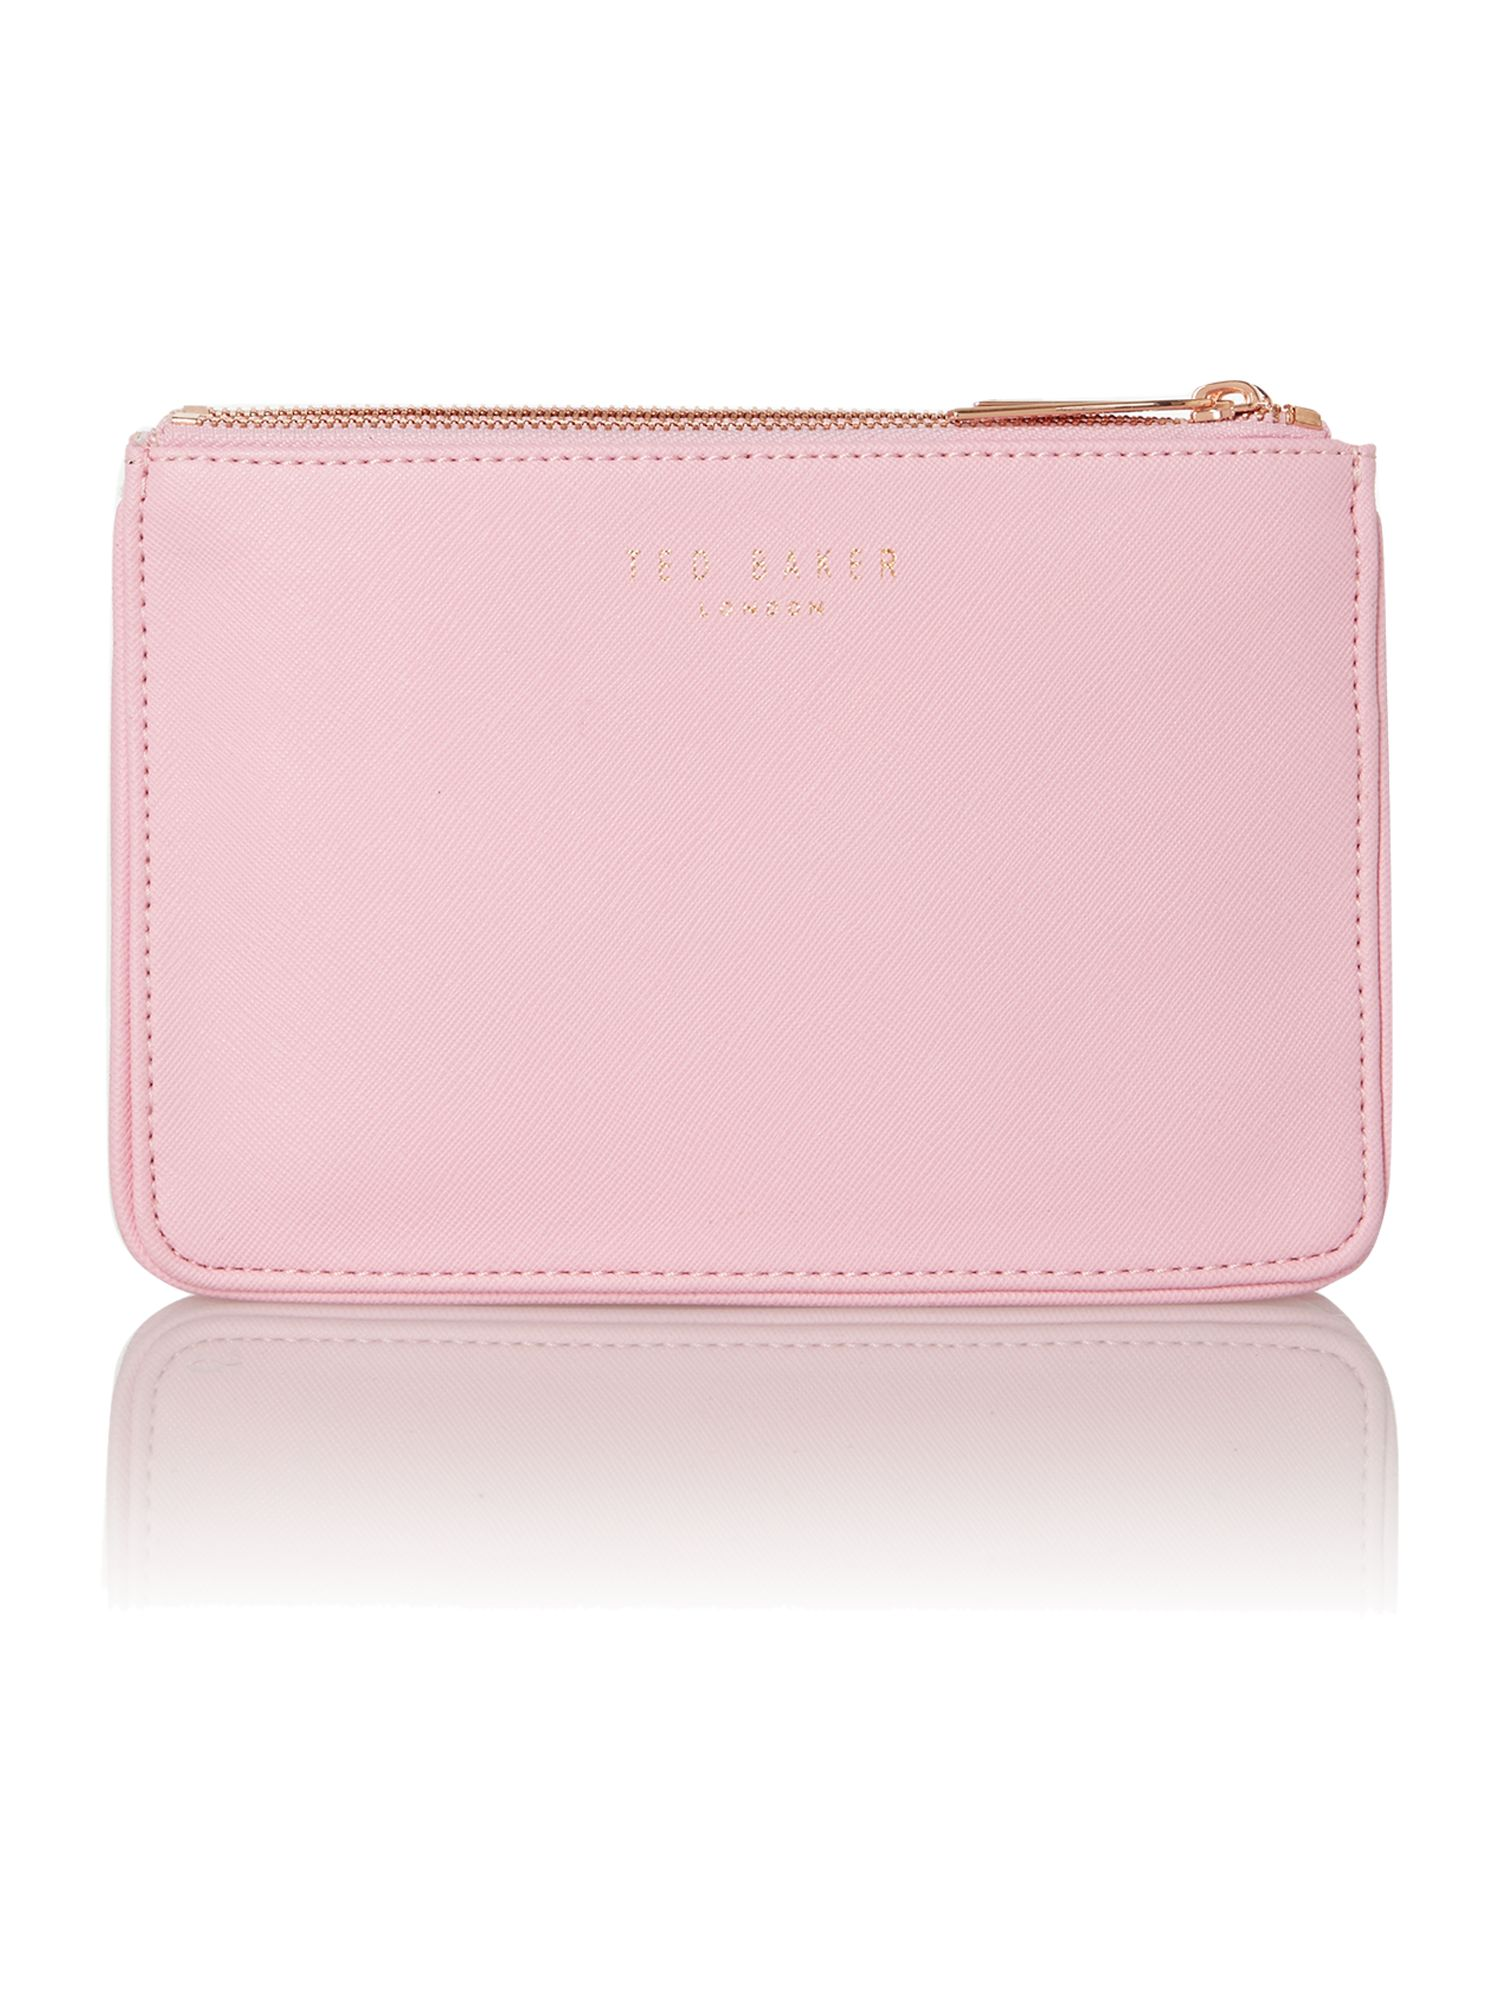 Pink small saffiano cross body bag